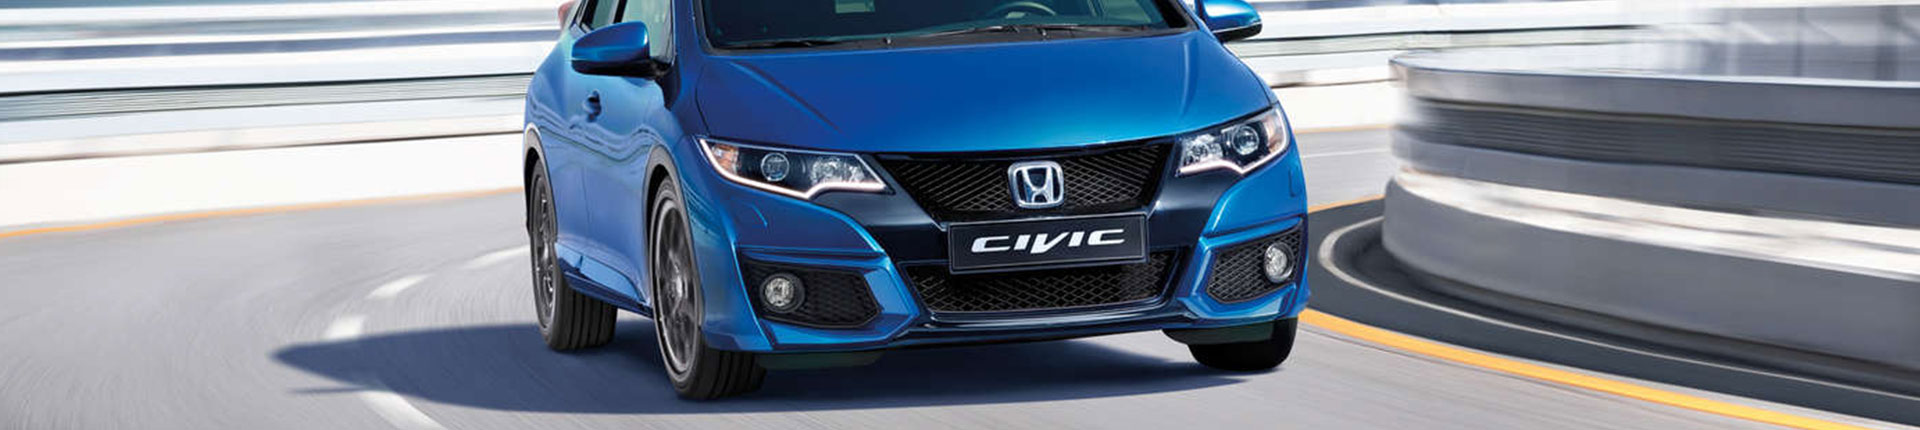 civic-slider7